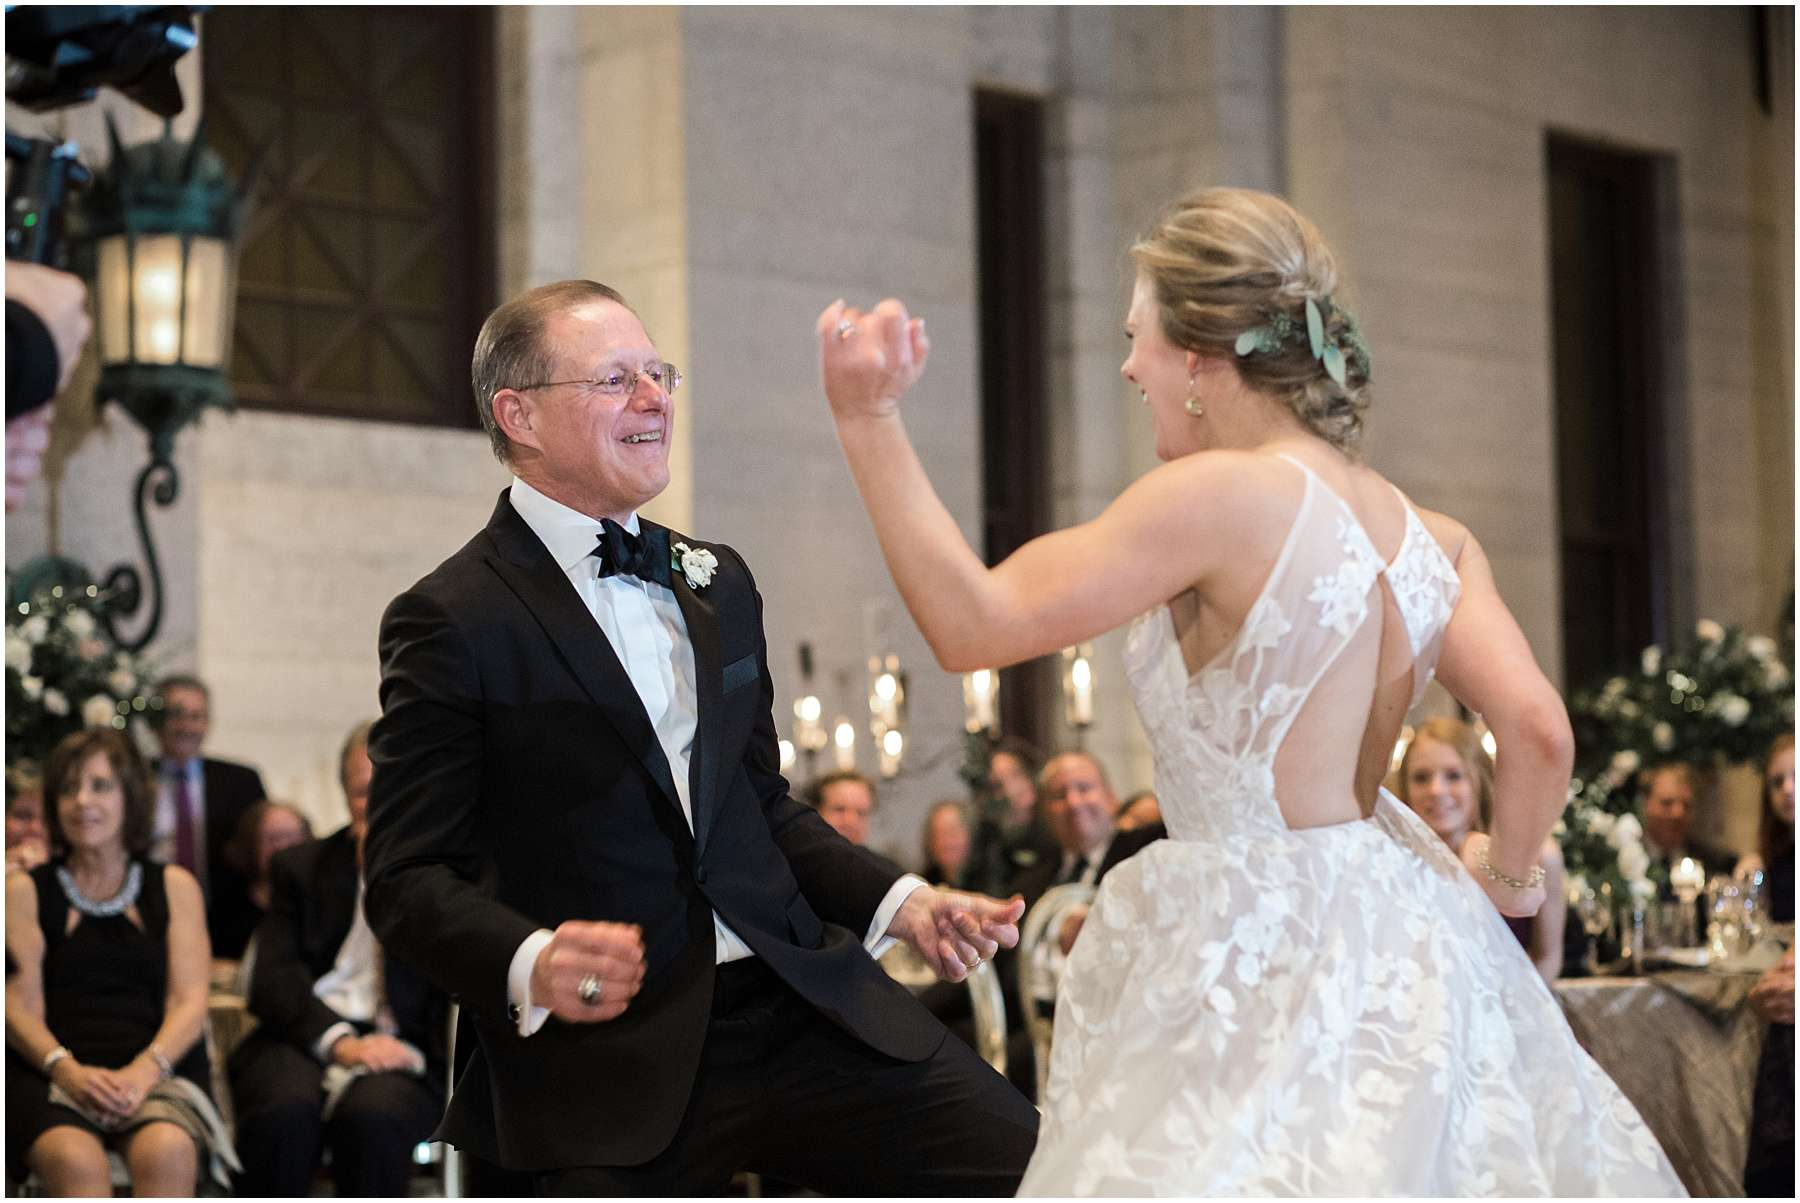 Wedding at the Ohio Statehouse | Columbus Ohio Weddings 218